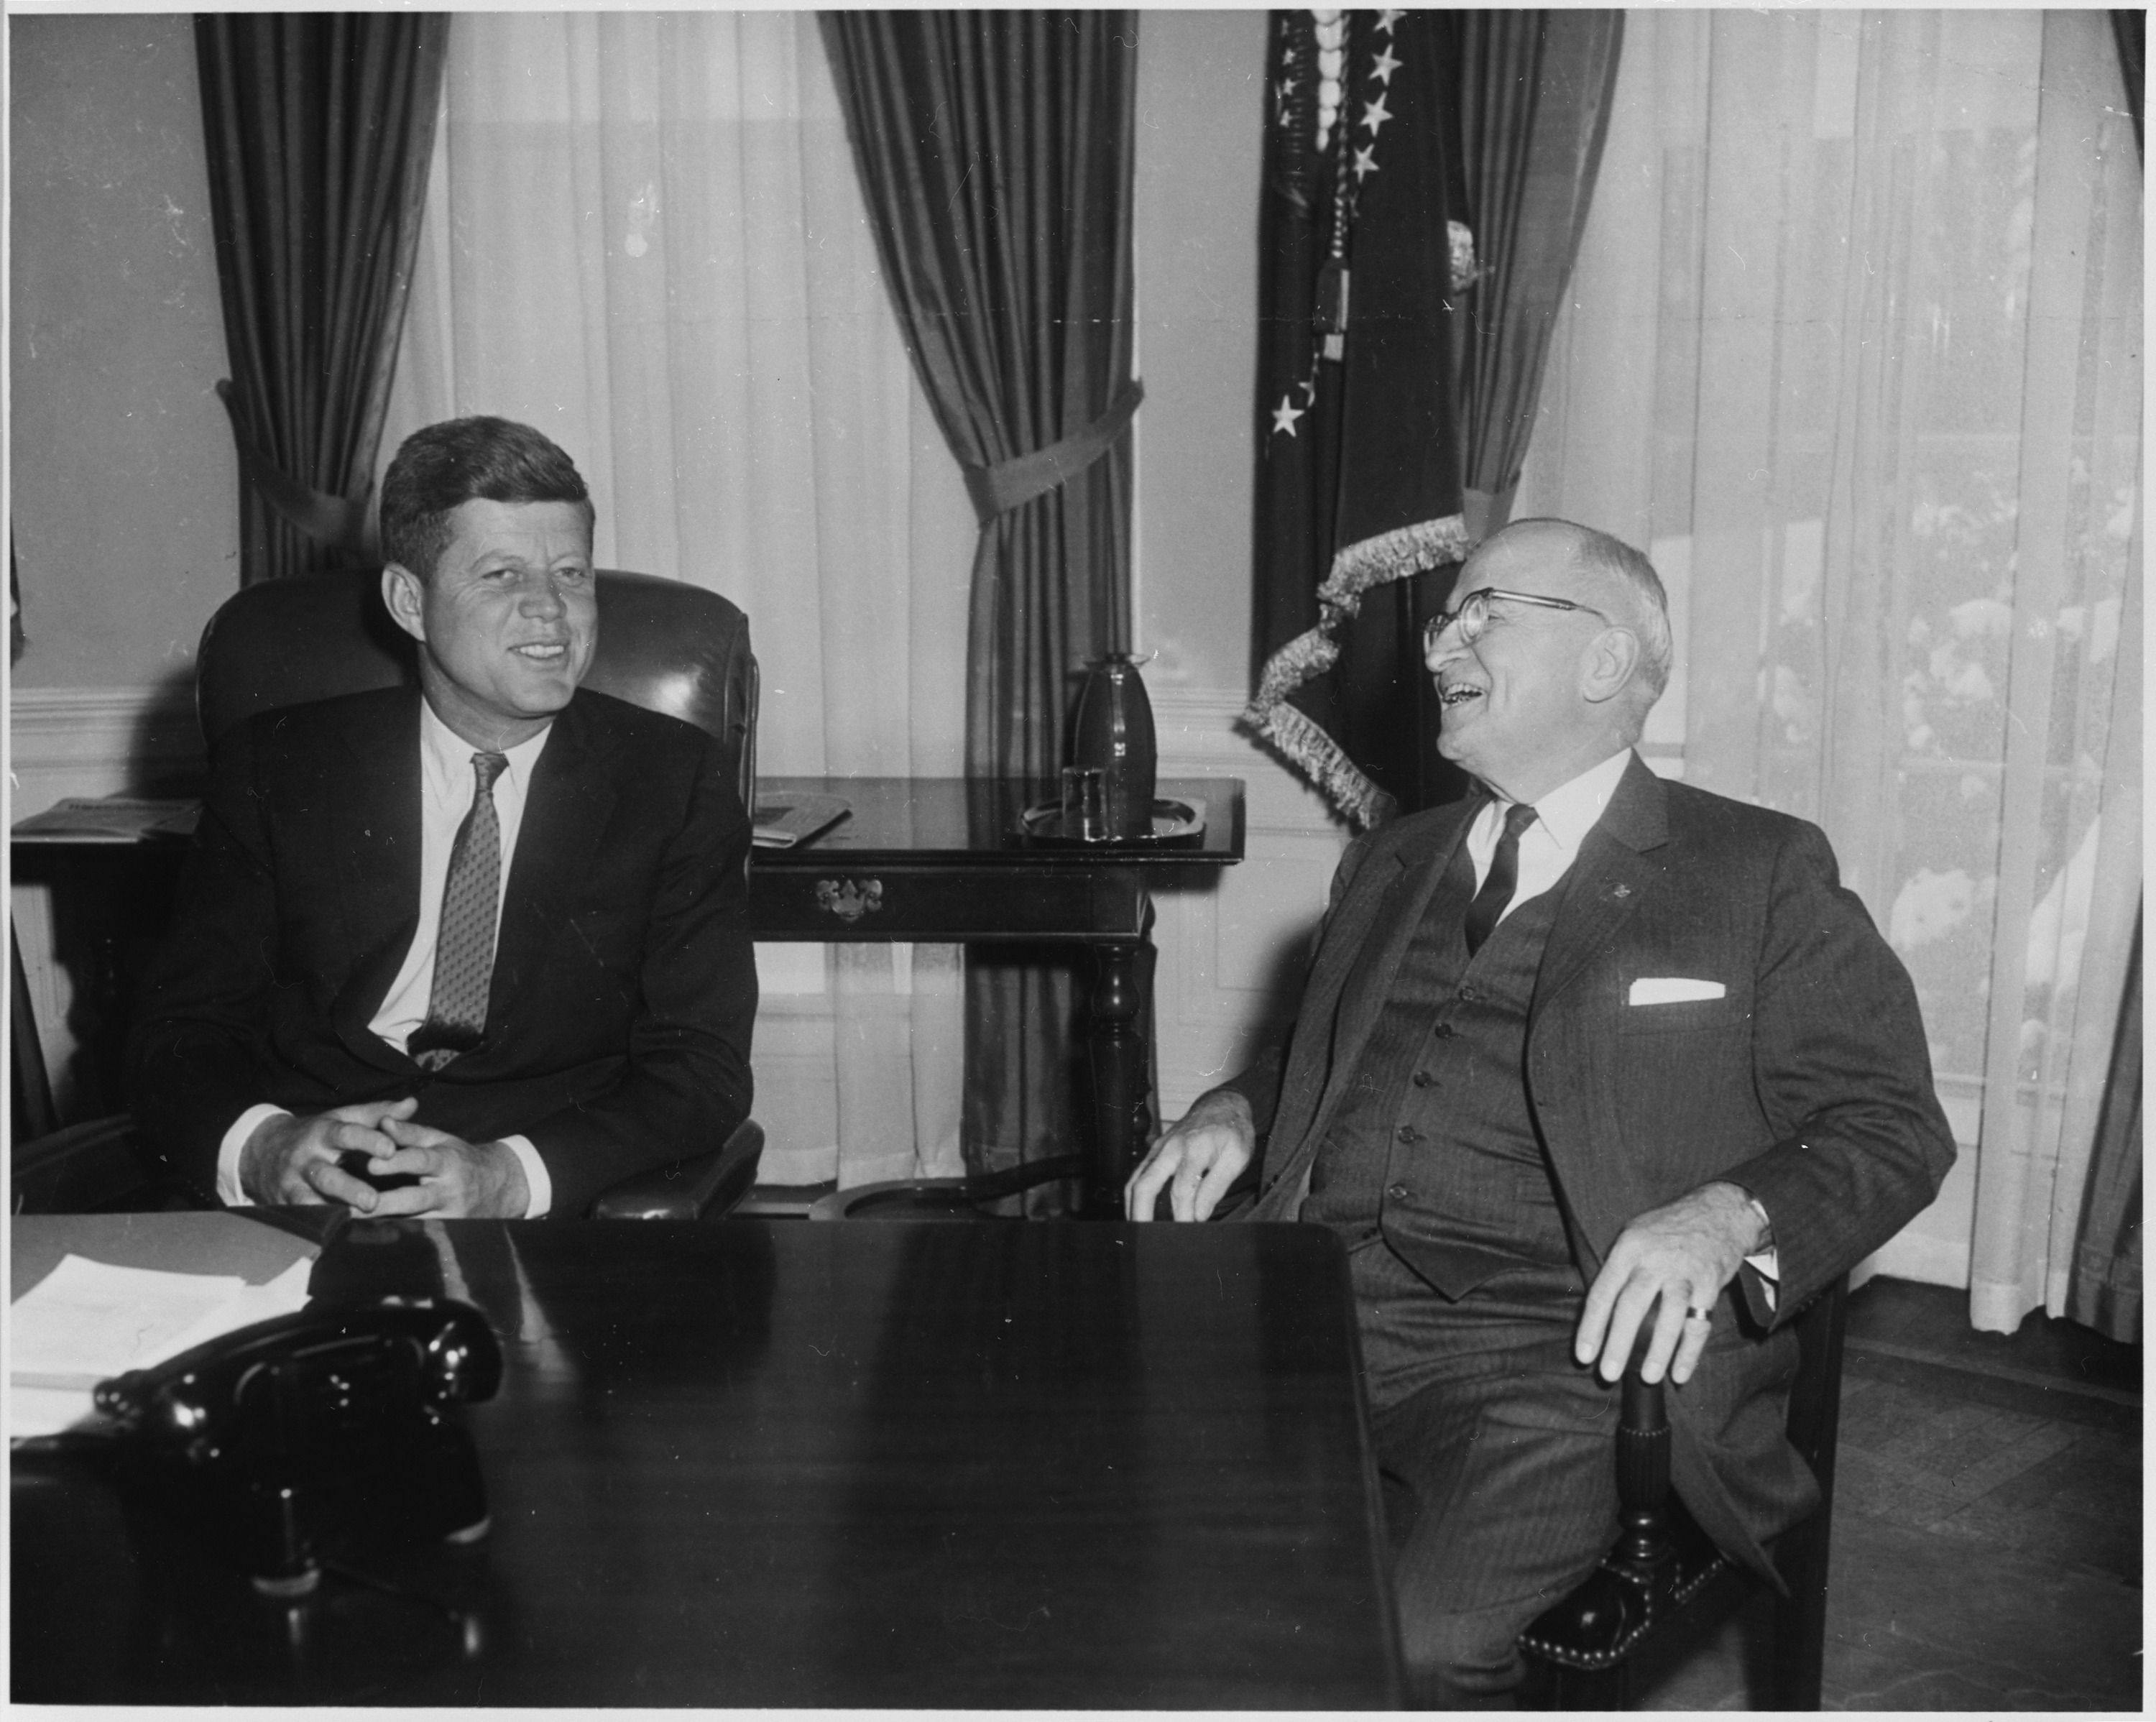 John F. Kennedy and Harry Truman in the Oval Office on January 20, 1962. Photo from the holdings of the National Archives and Records Administration. Office of Presidential Libraries. Harry S. Truman Library. (04/01/1985 - ), cataloged under the National Archives Identifier (NAID) 200435.